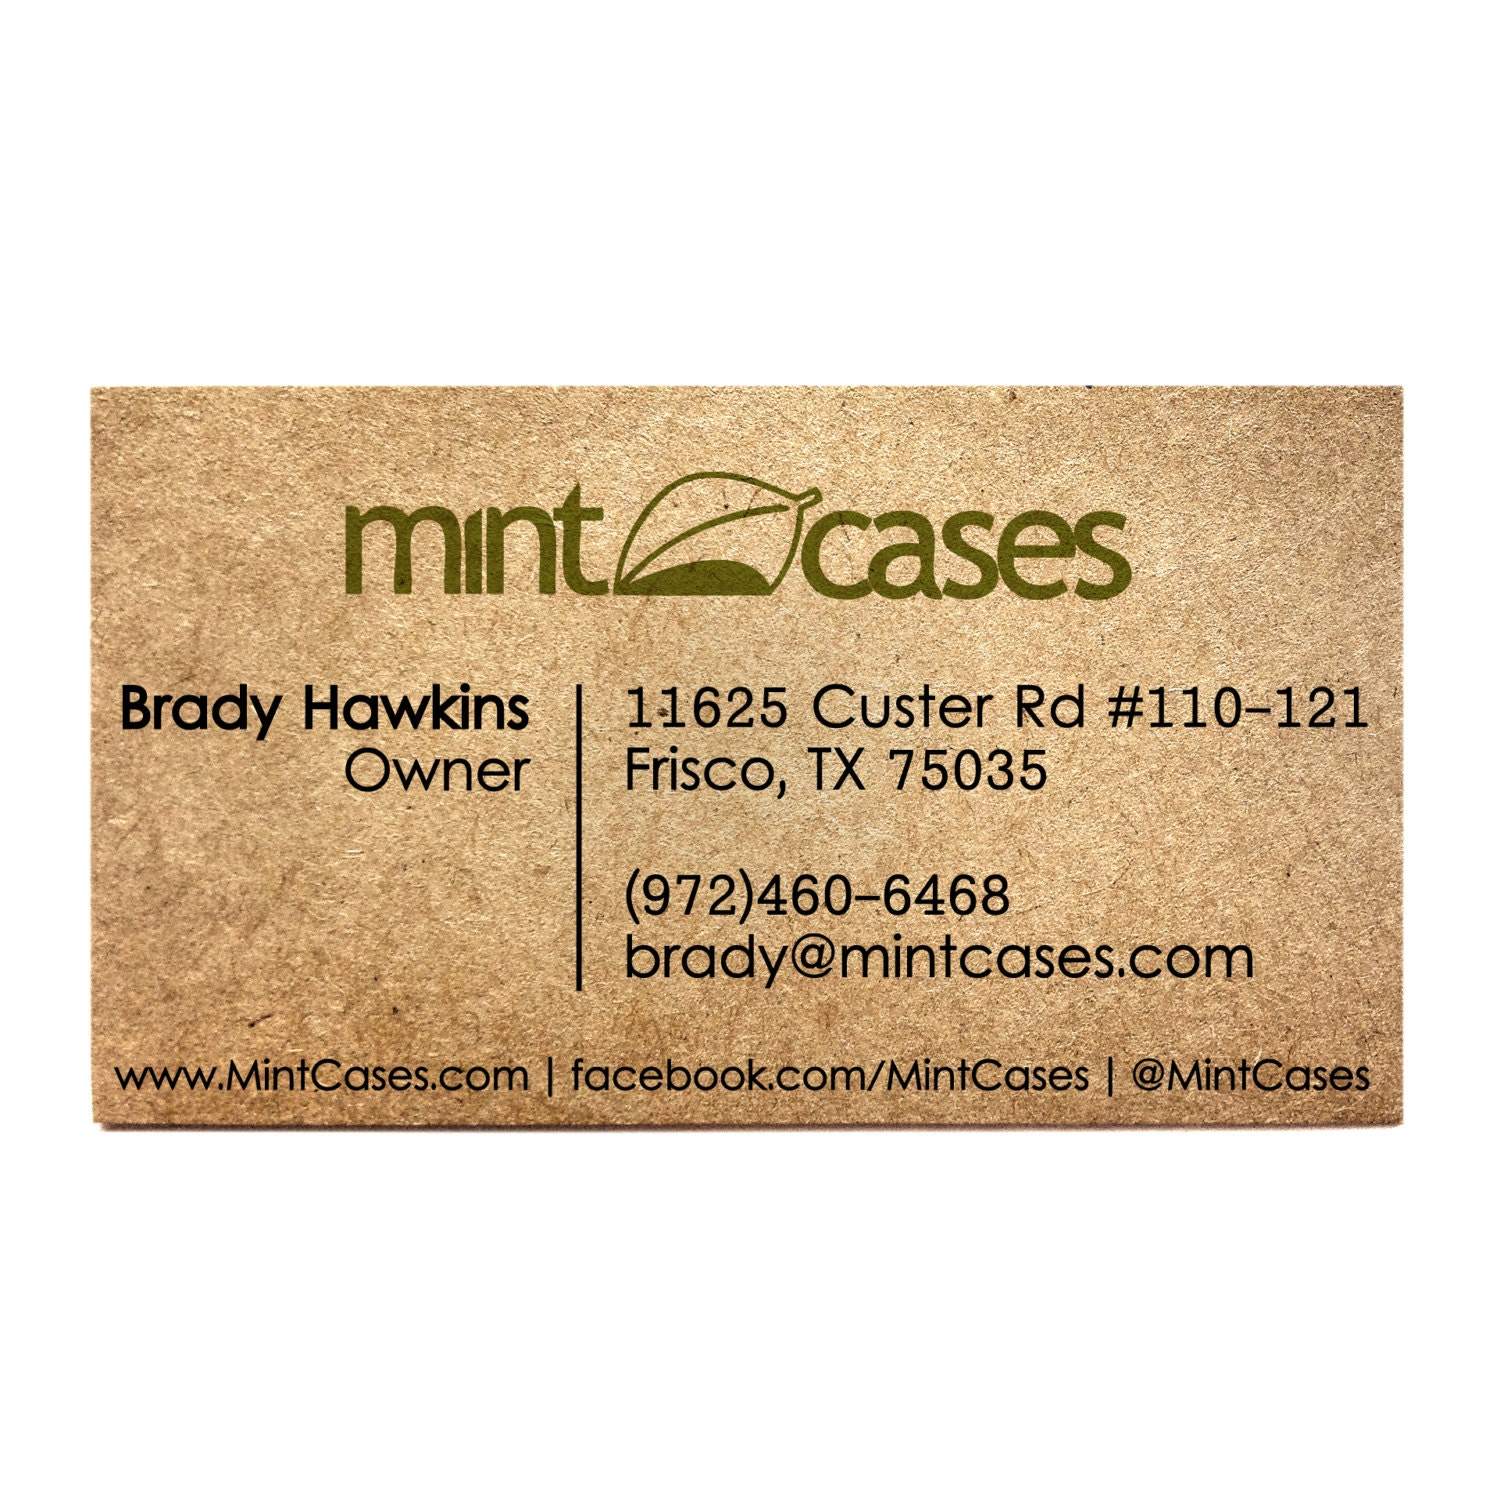 Rustic business cards Designed e side printed Kraft